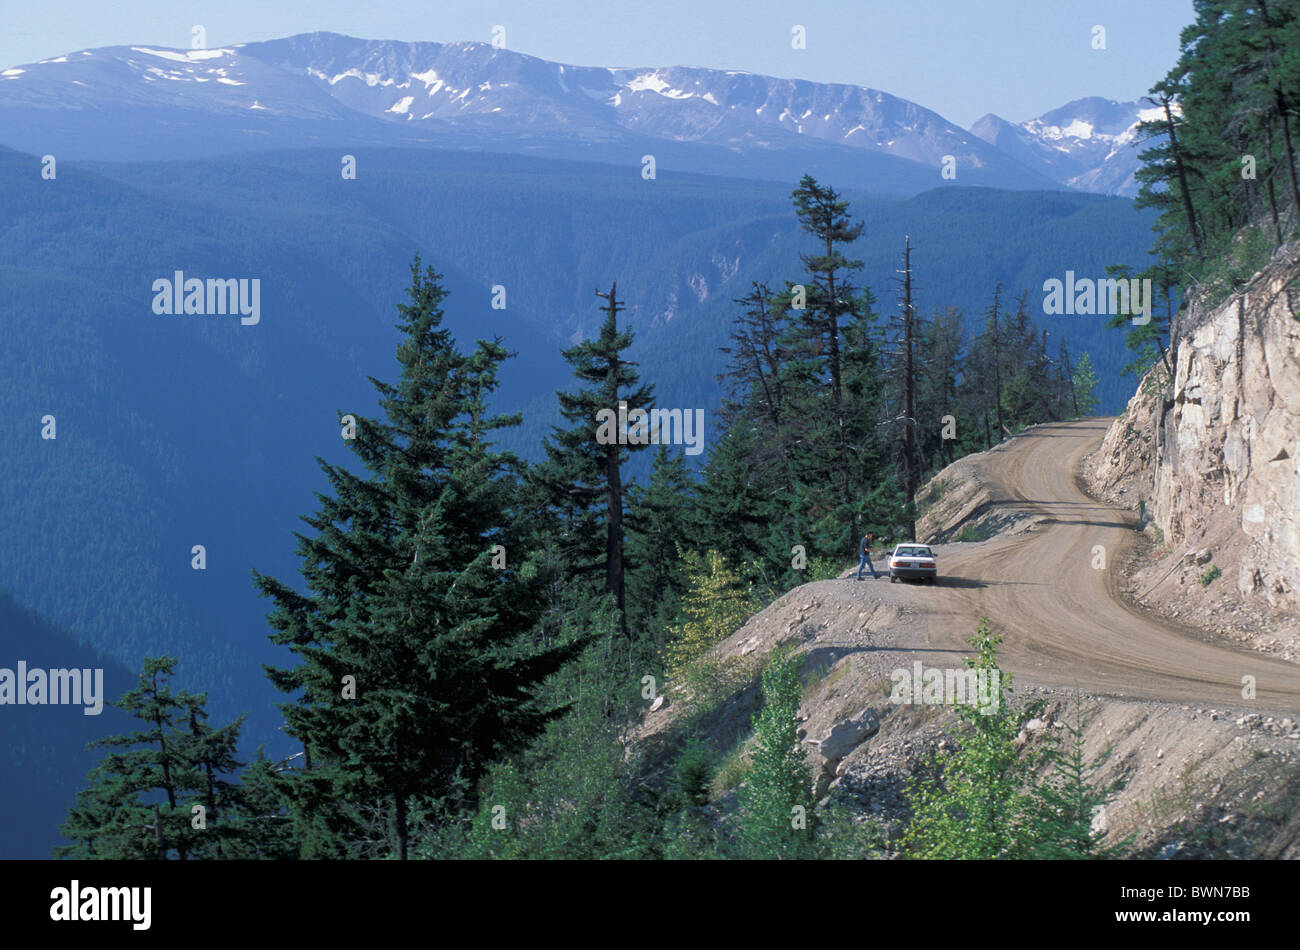 Canada North America America Highway 20 Coast Mountains British Columbia car road street coniferous forest l - Stock Image